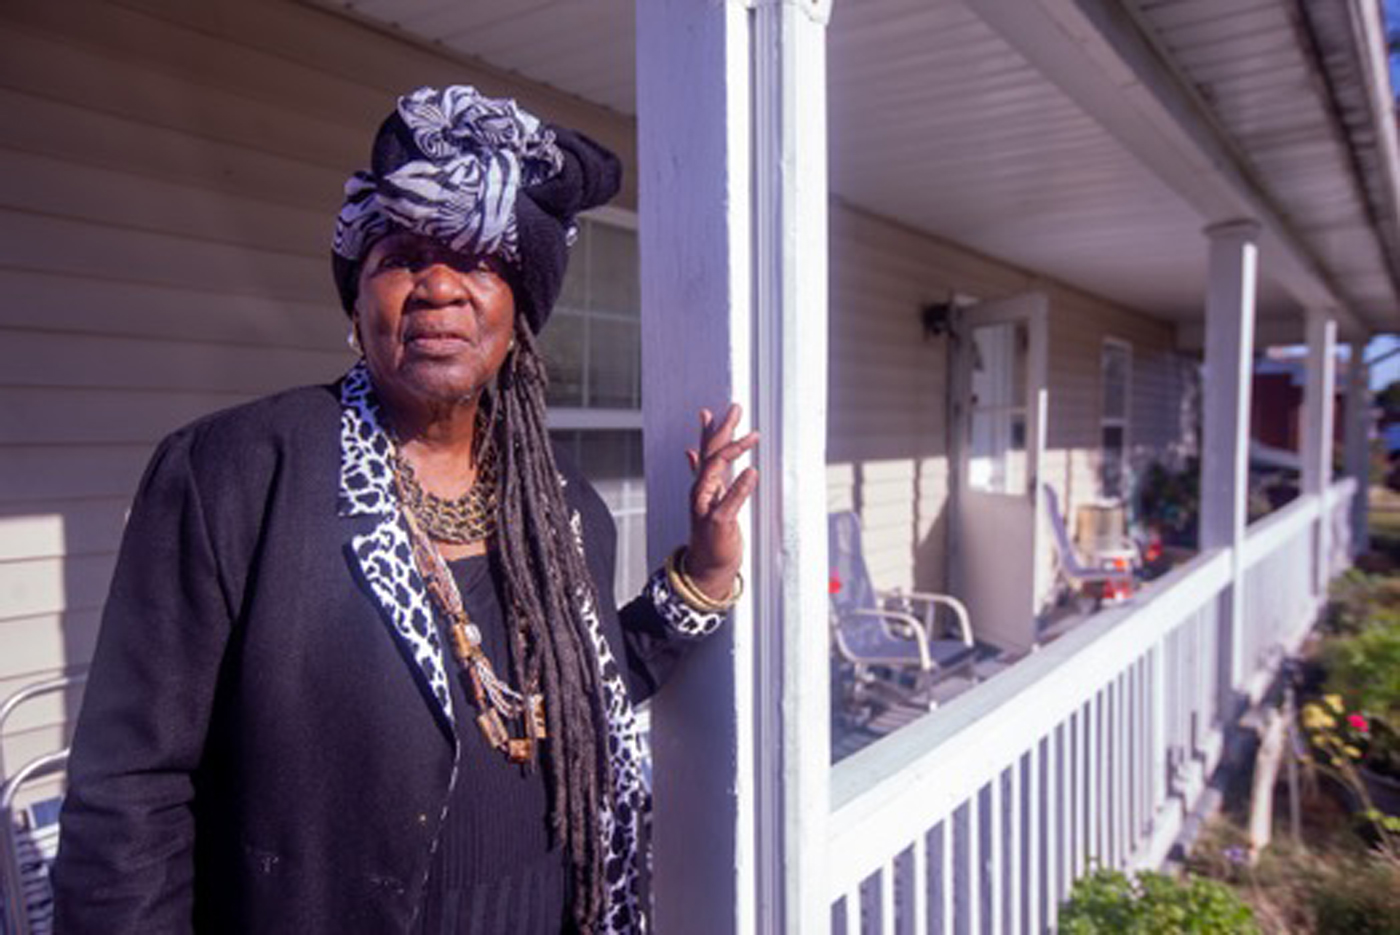 Mamie Cosey, 78, on the front porch of her home near the Veolia waste incinerator she blames for making her three great-grandchildren sick.